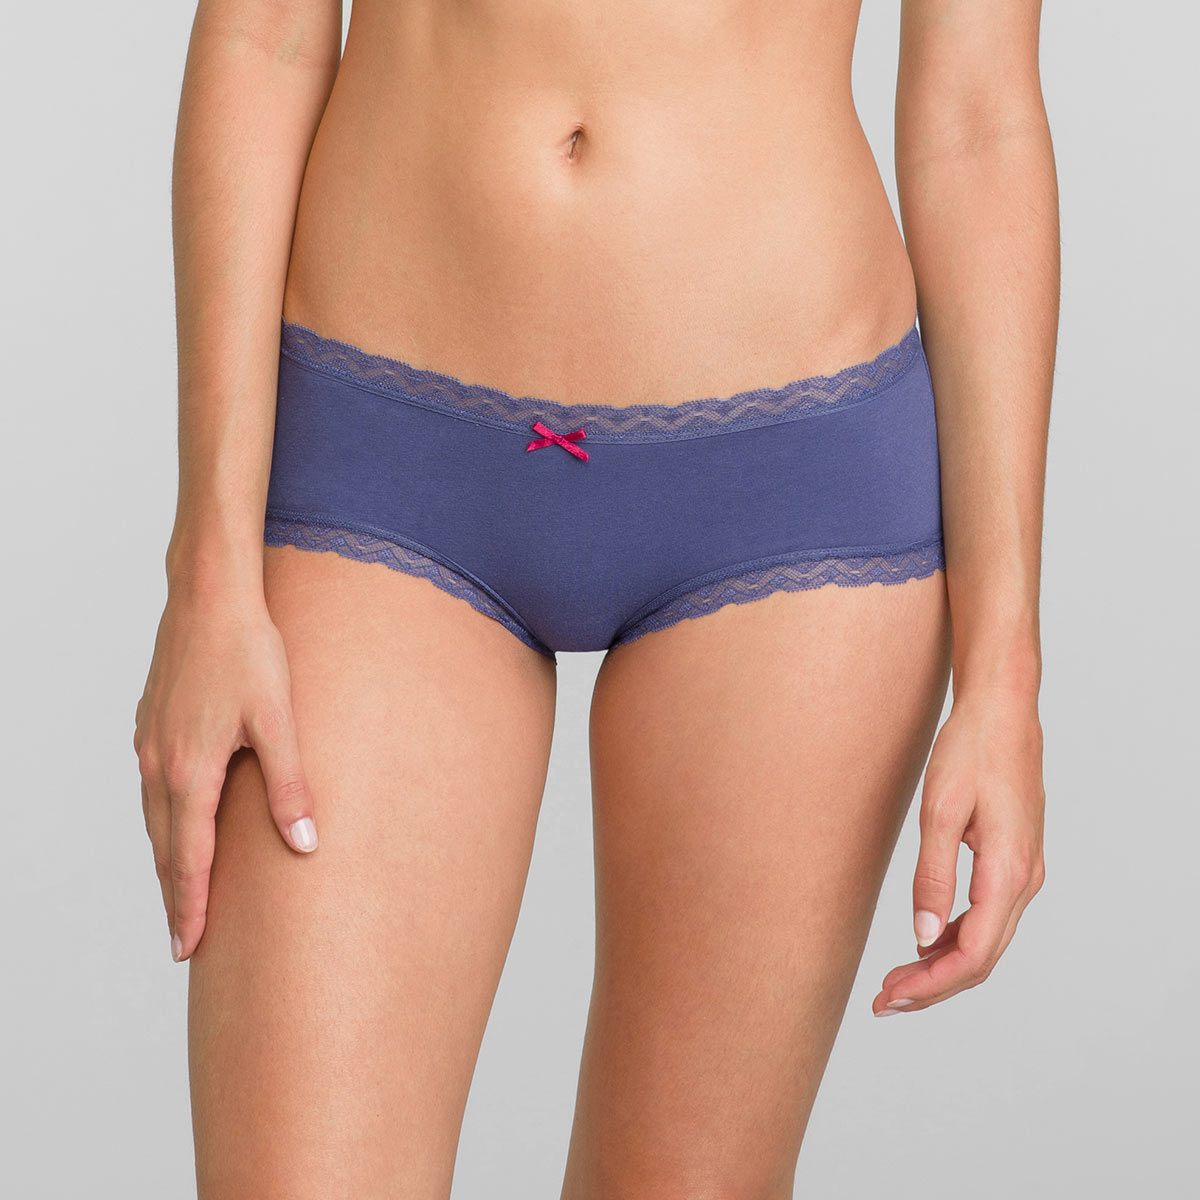 Pacco da 2 Panty blu e stampa foglie Cotton Fancy, , PLAYTEX